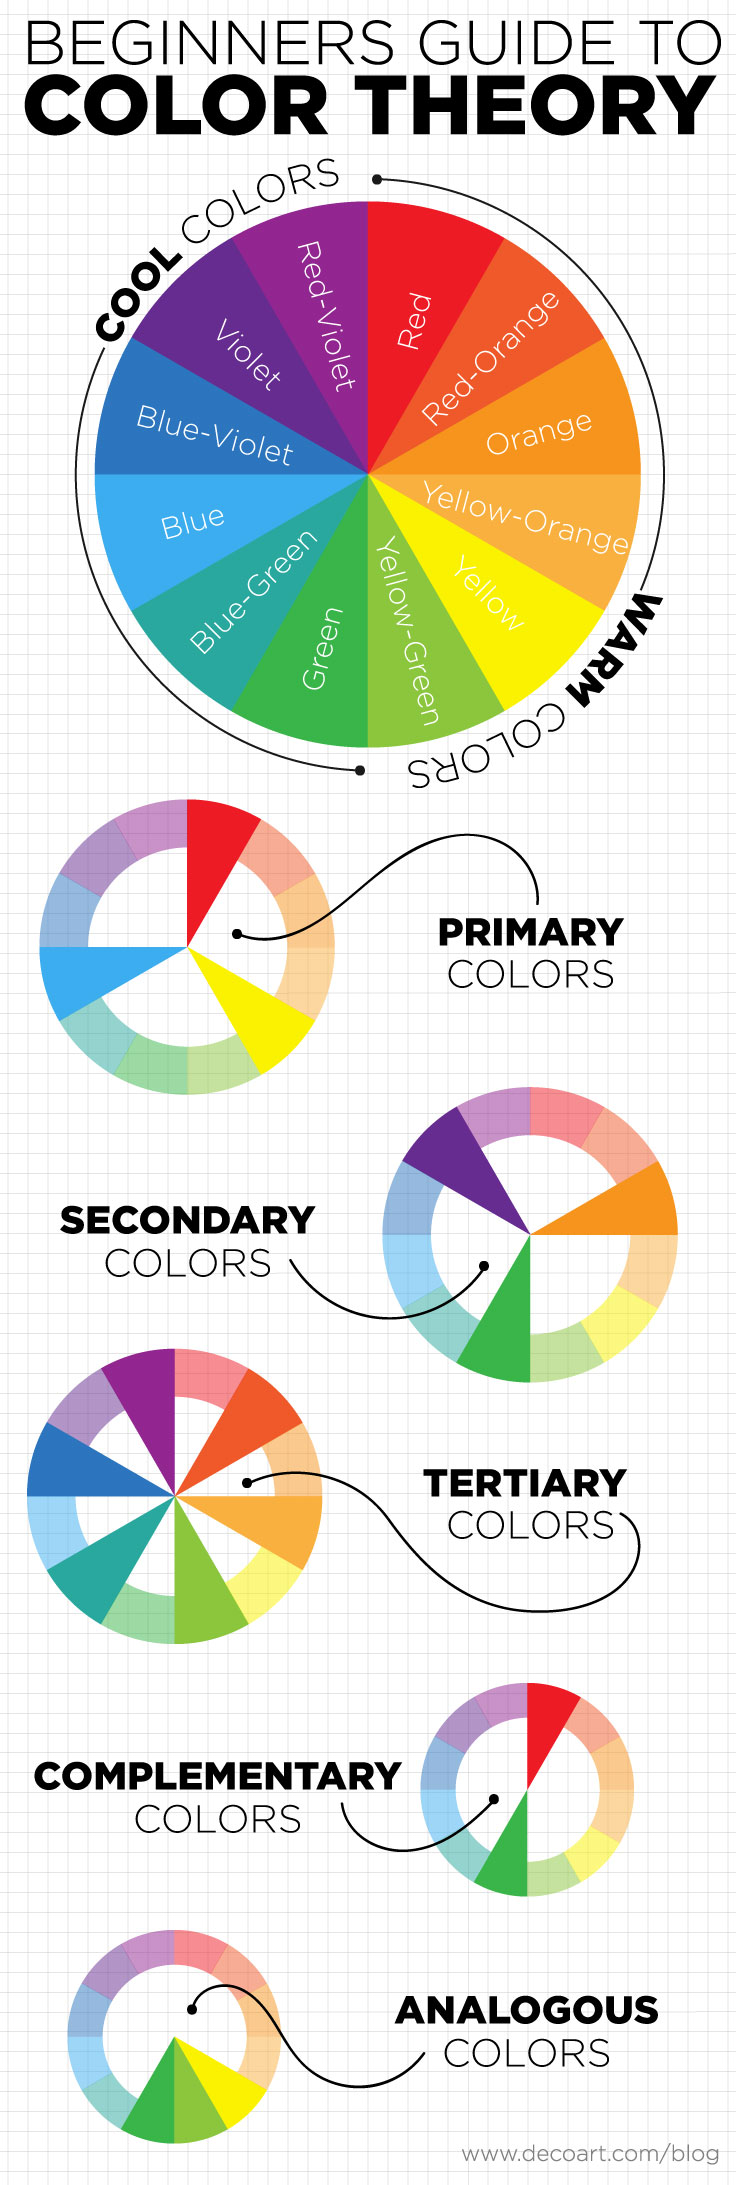 Color Theory Basics: The Color Wheel Pinnable Image